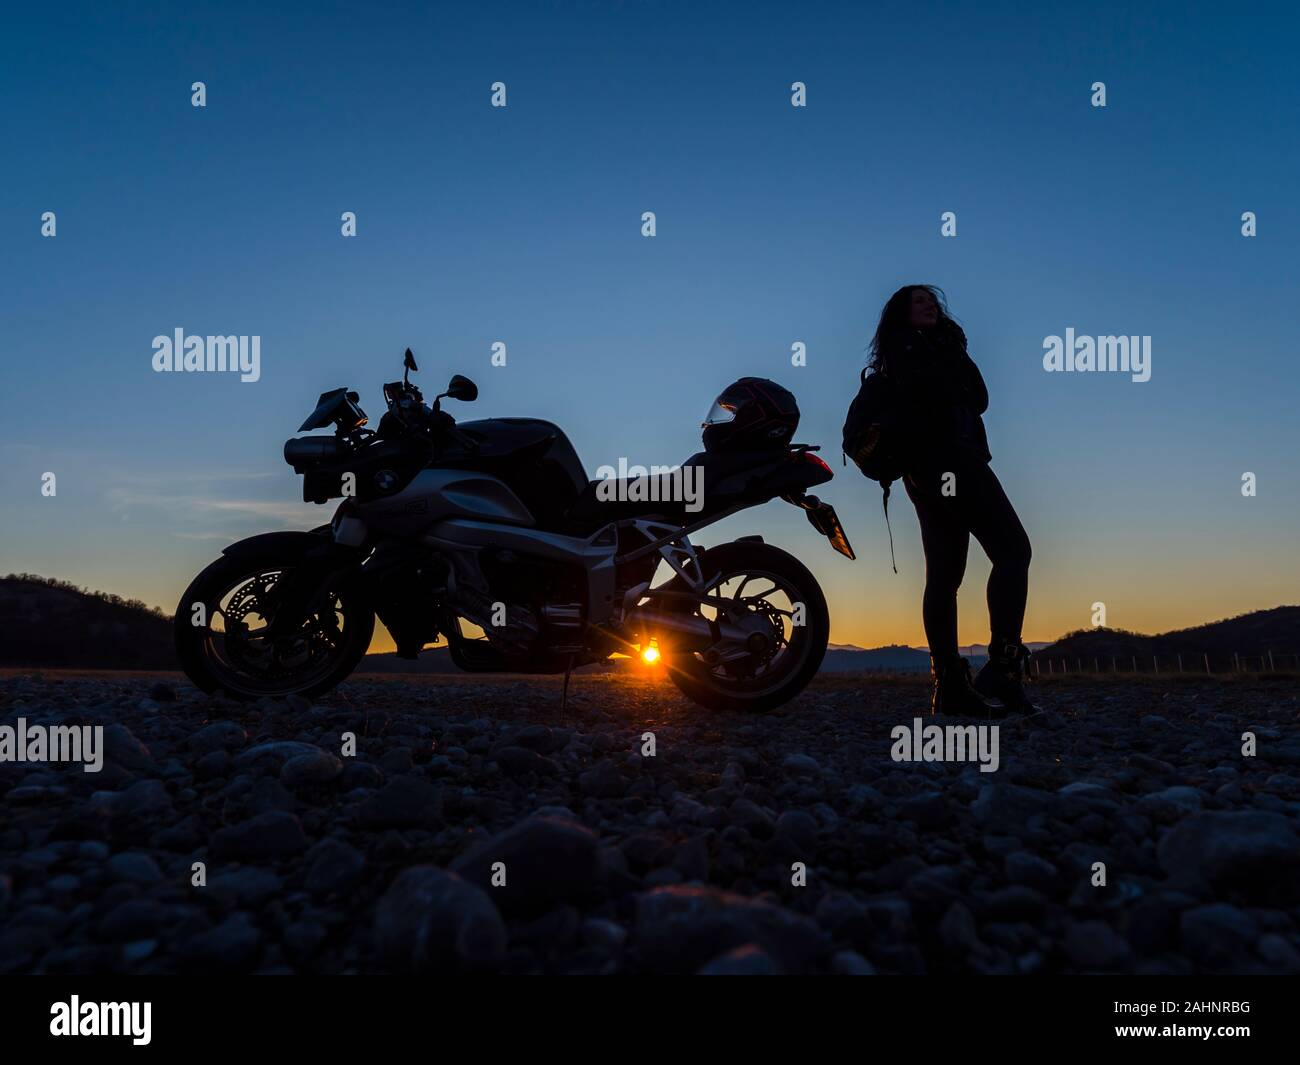 Sunset scenery scenic female motorcycle driver stretching her legs standing besides next to vehicle holding hold traveling rucksack setting sun peek Stock Photo